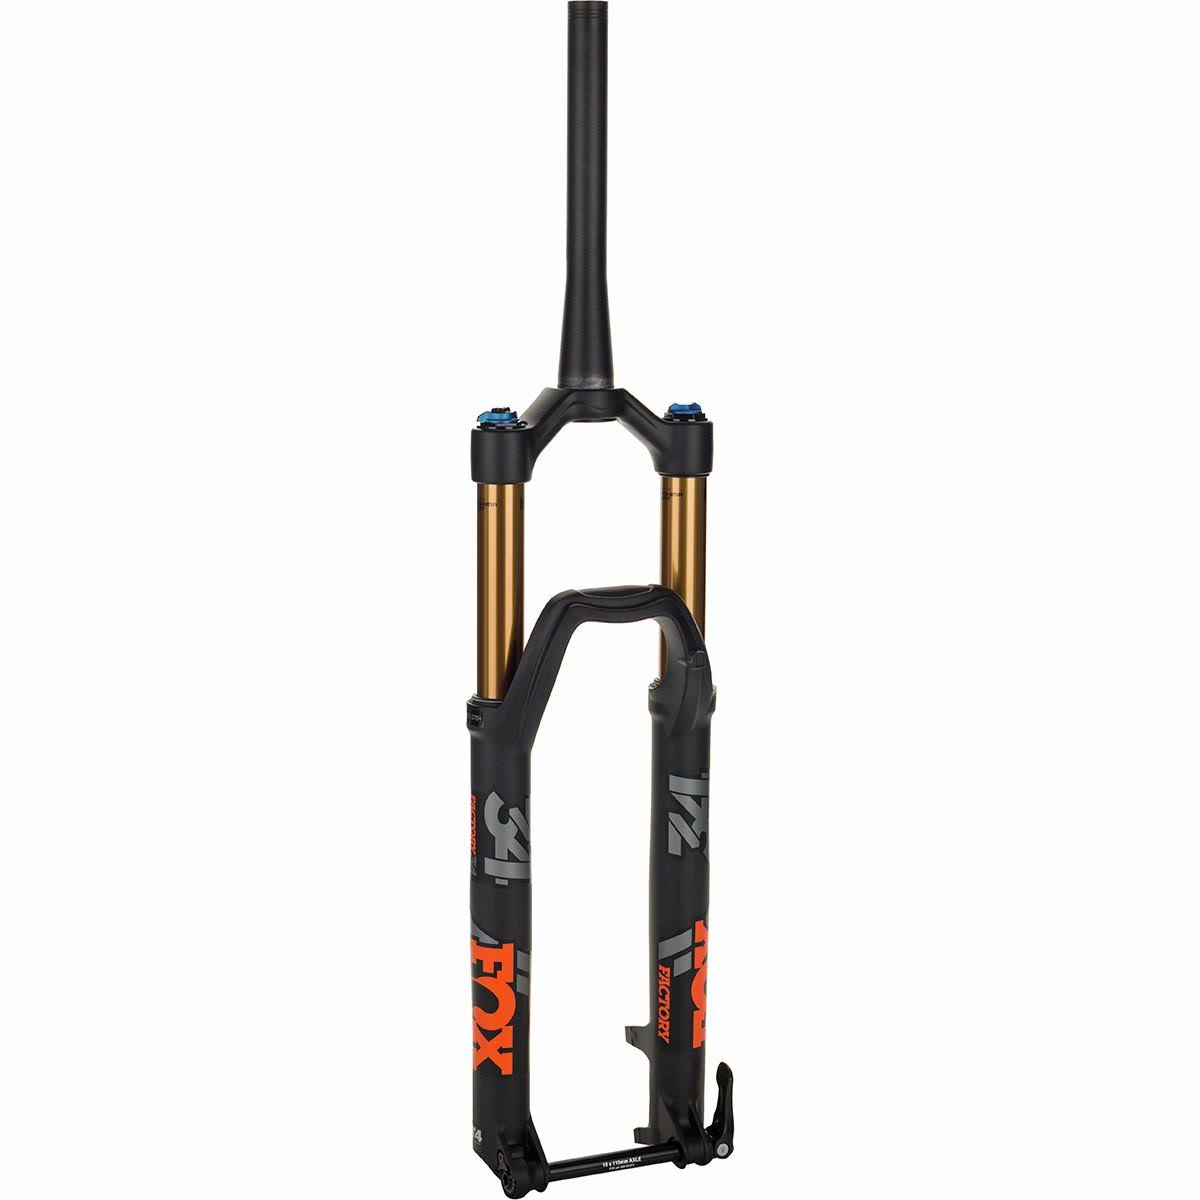 Fox 34 91020713 Factory Suspension Fork - 29""